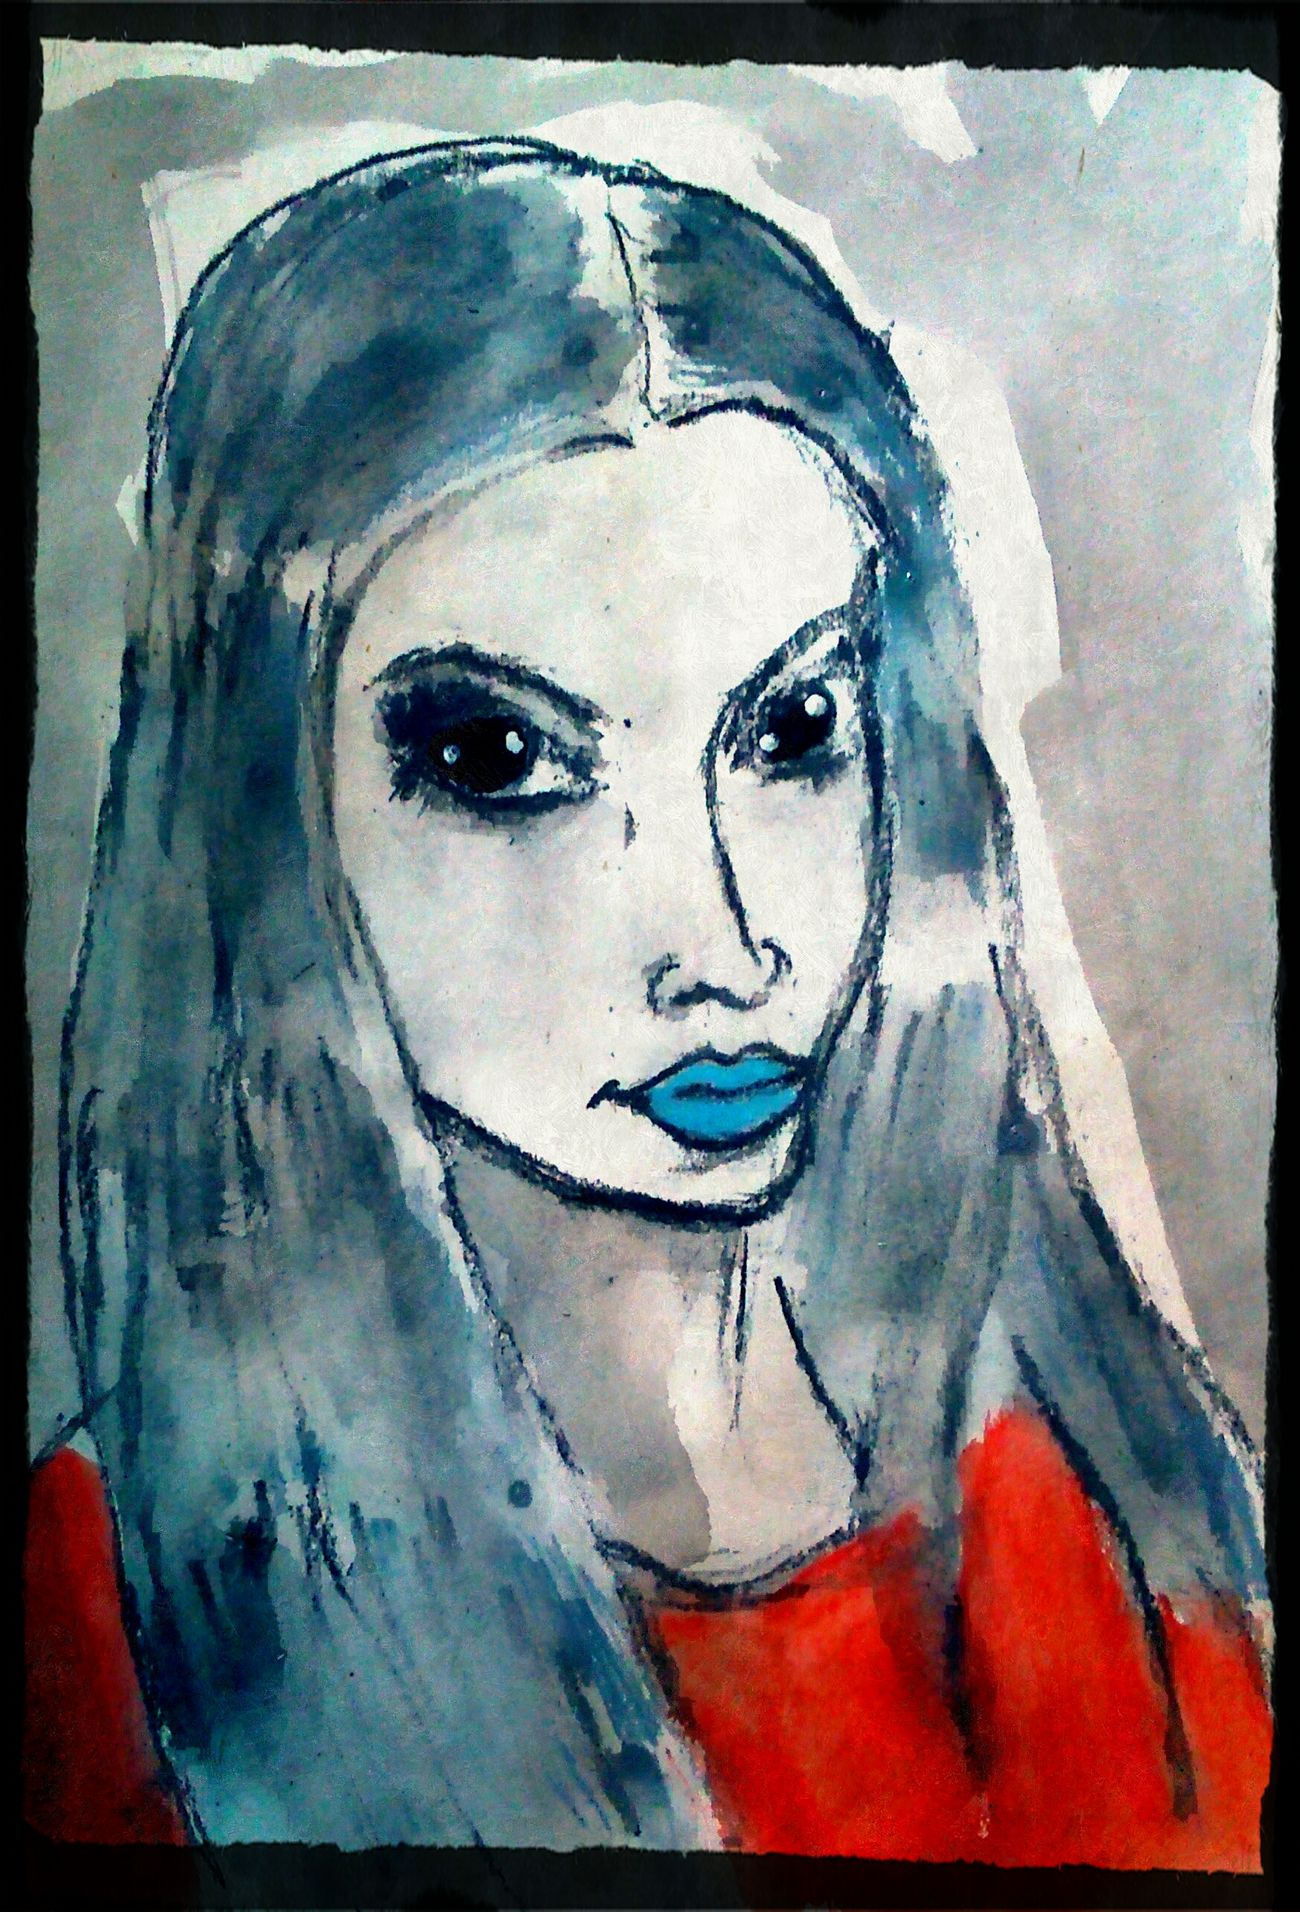 Portrait One Person One Young Woman Only Art And Craft Sketch Human Representation Artistic Myartwork Drawing - Art Product